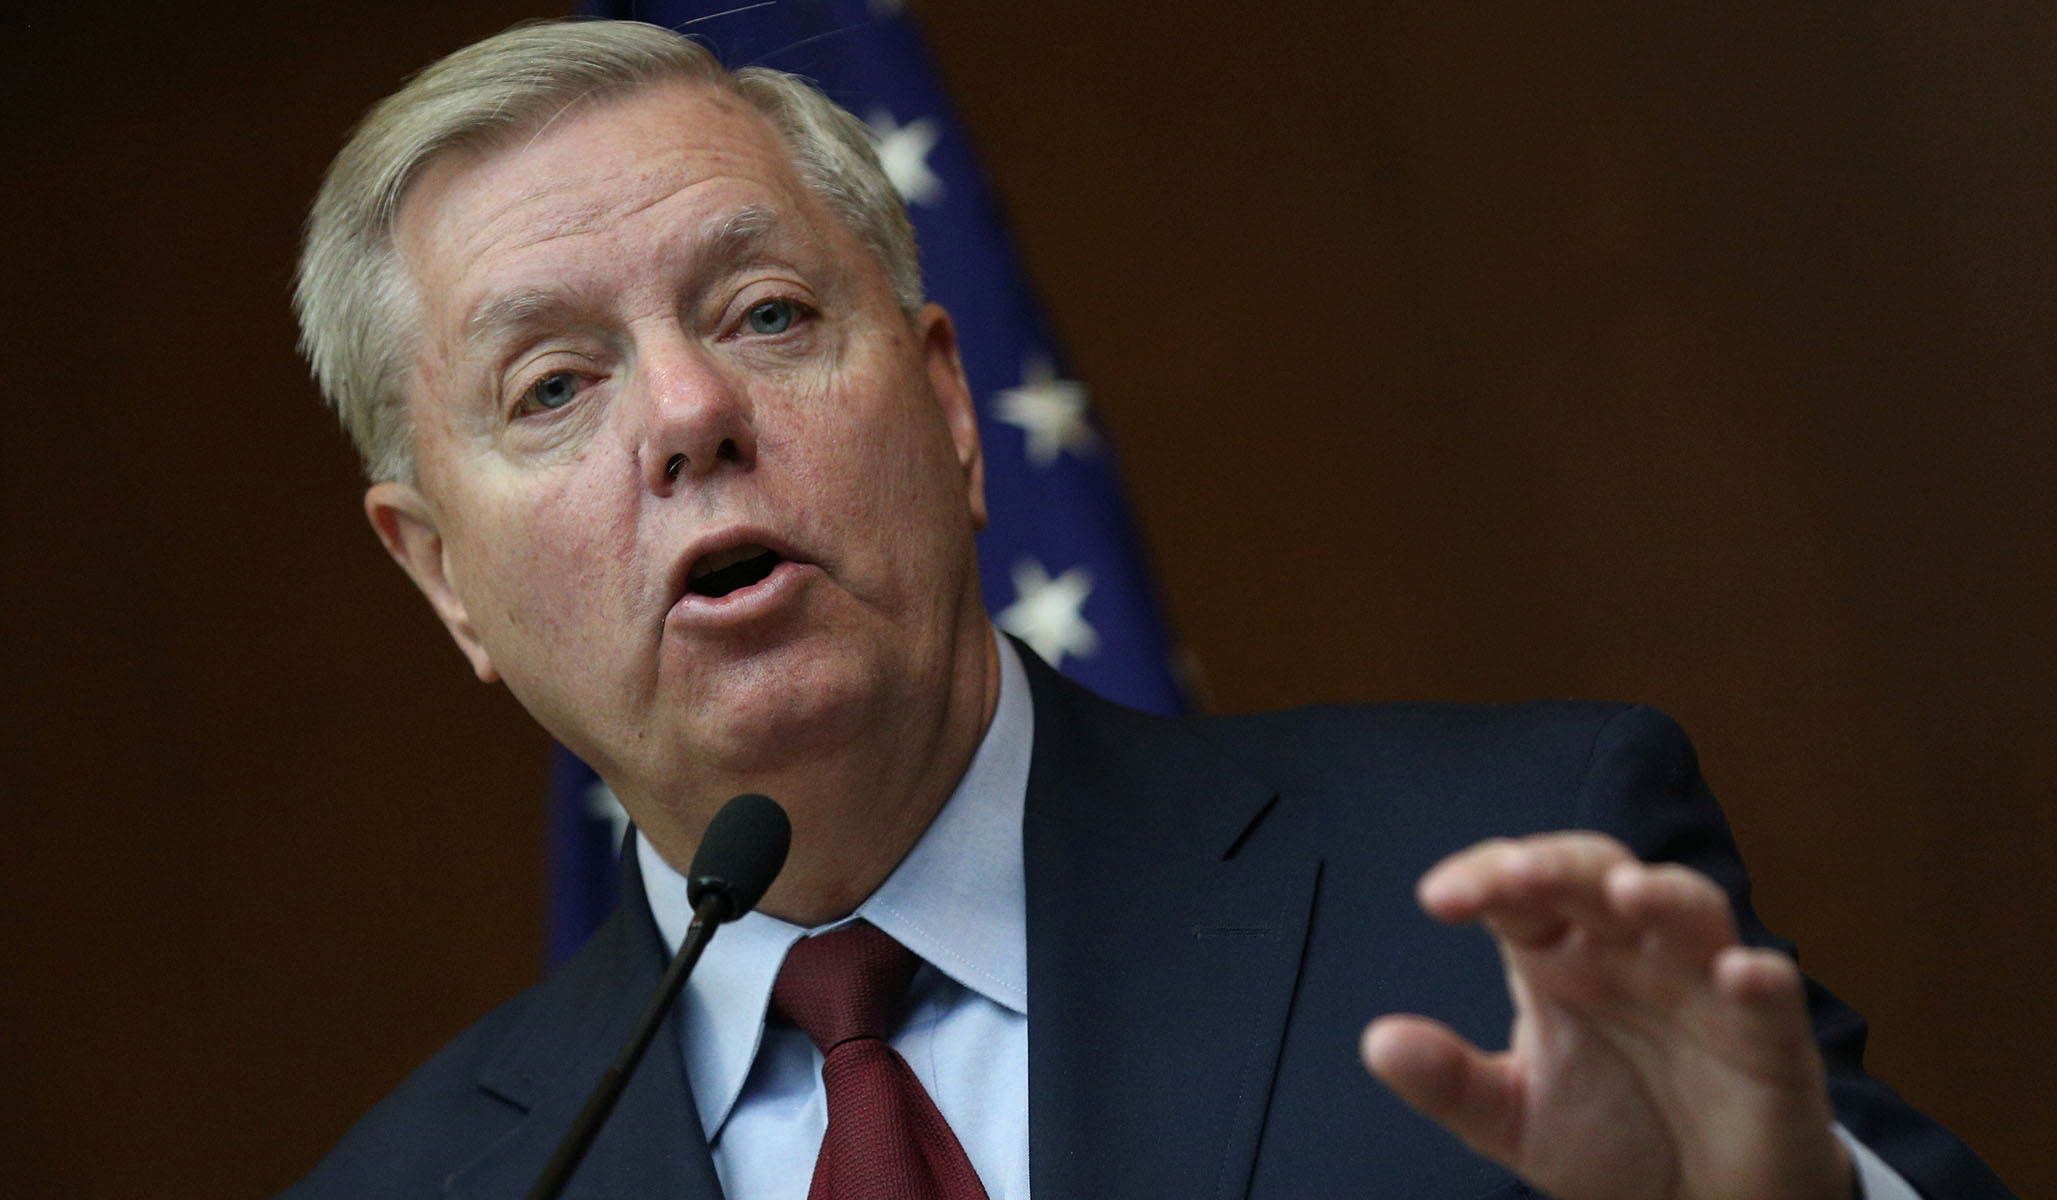 Graham on Syria: 'This Is a Complete and Utter National Security Disaster in the Making'